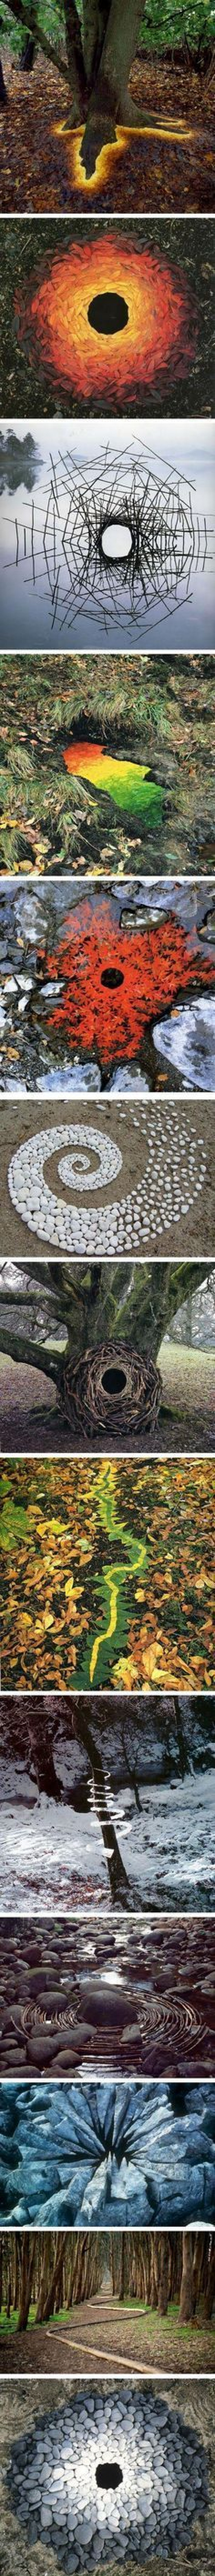 An Artist Uses Nature To Create Some Amazing Land Art